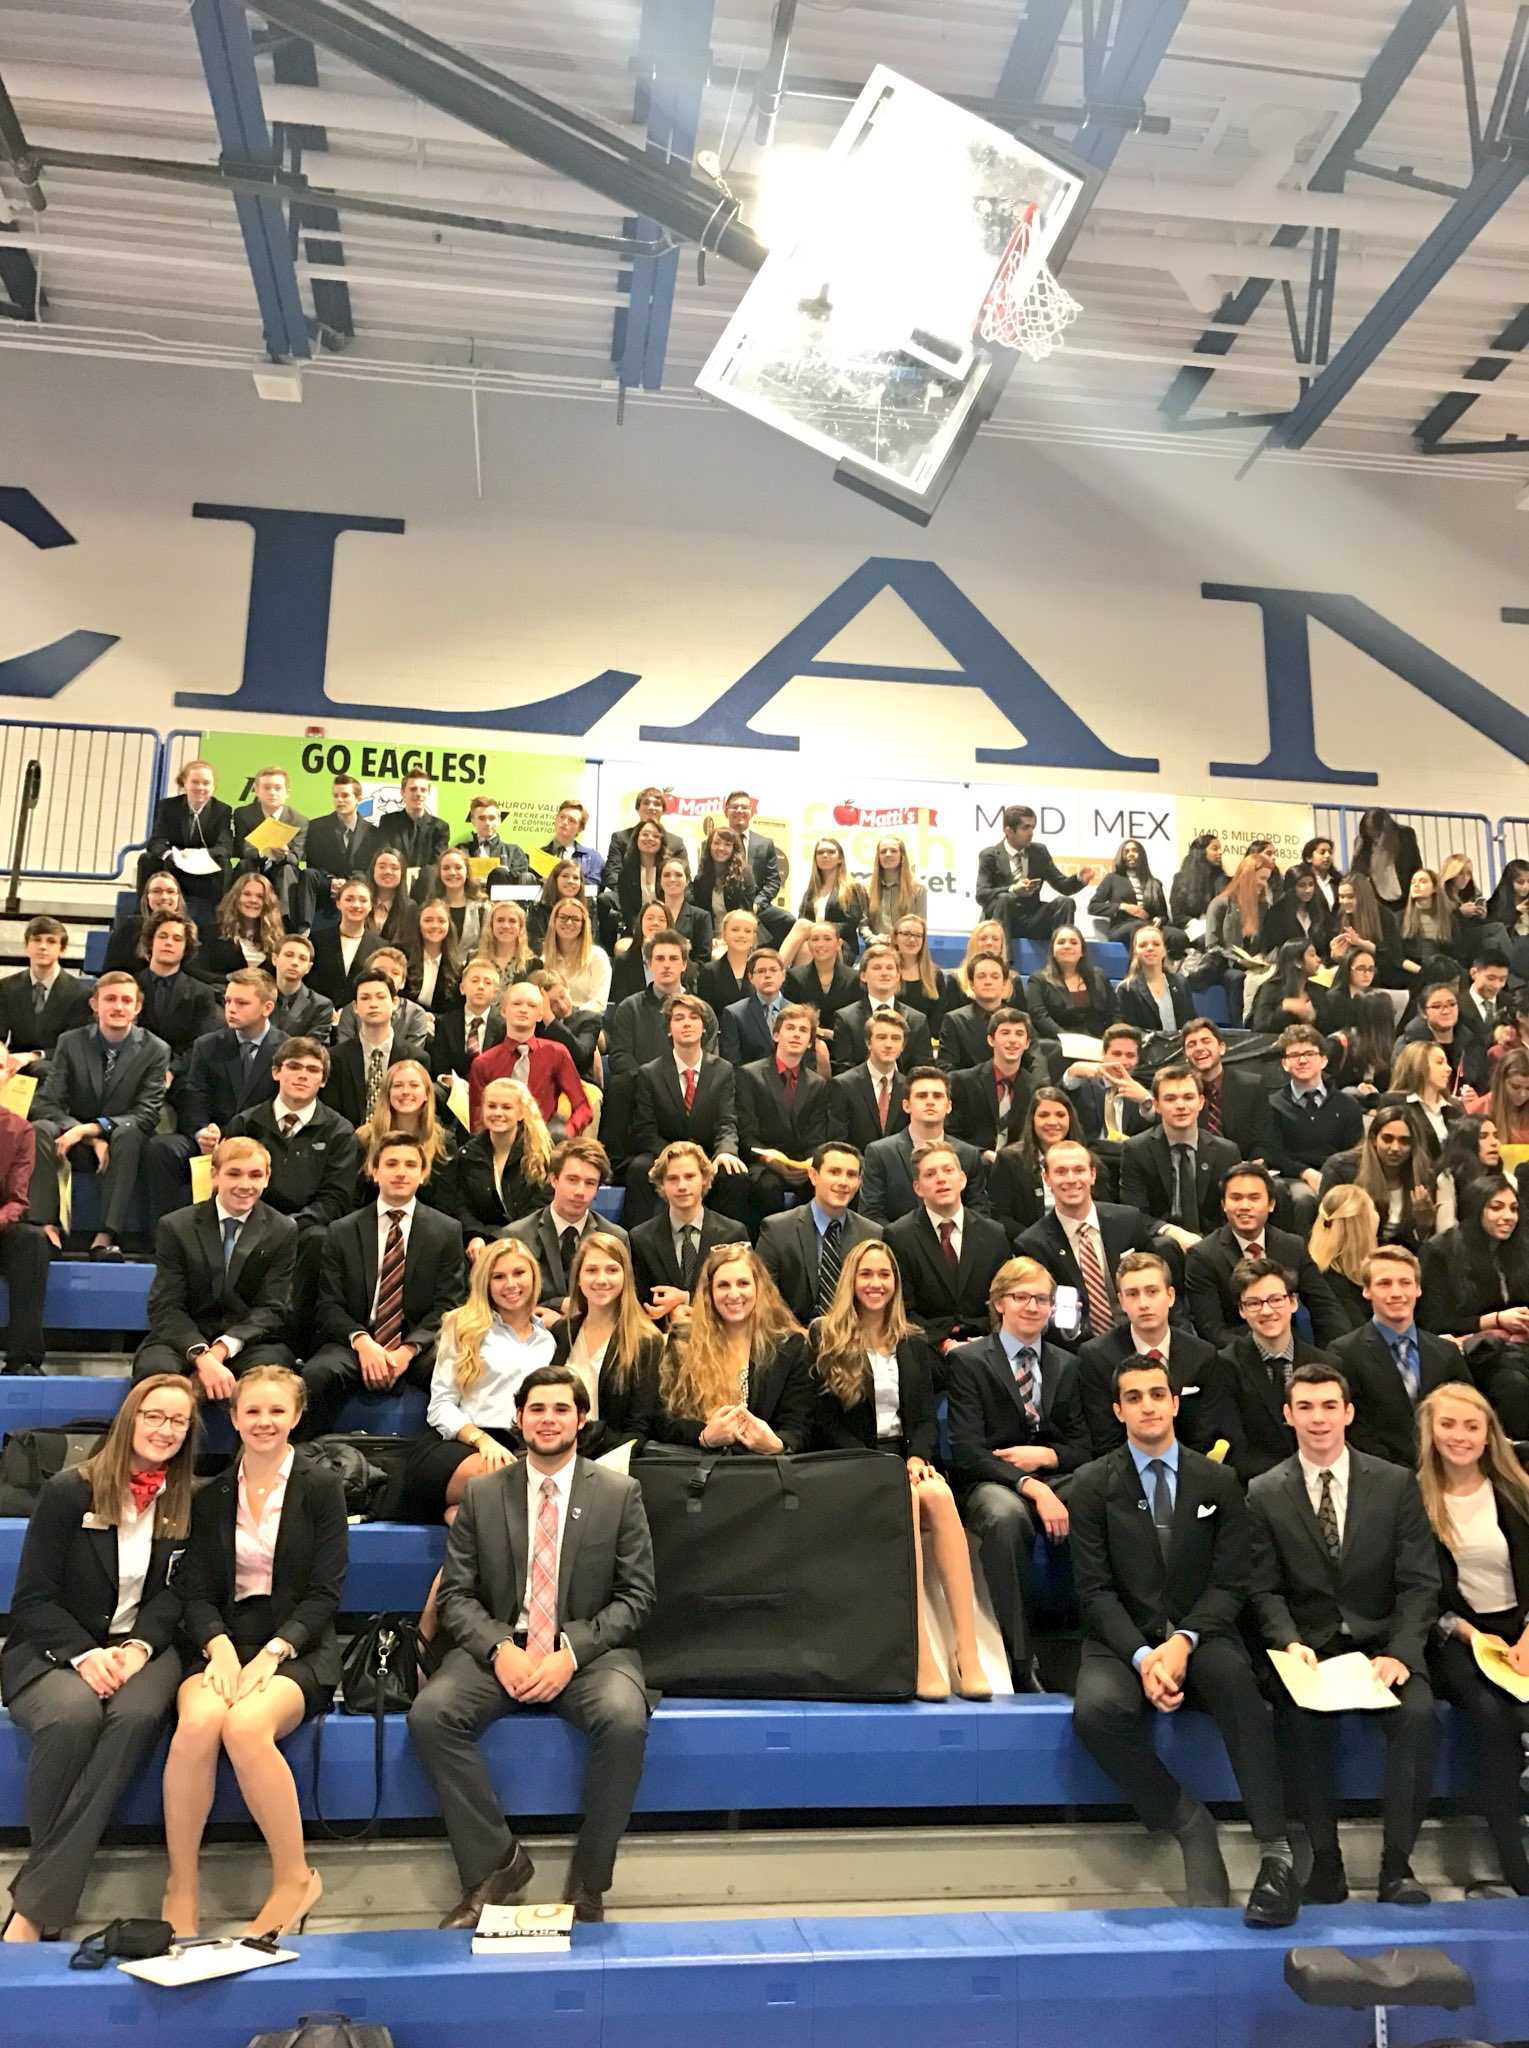 On Jan. 14, over 100 Milford students competed at the DECA competition at Lakeland High School.